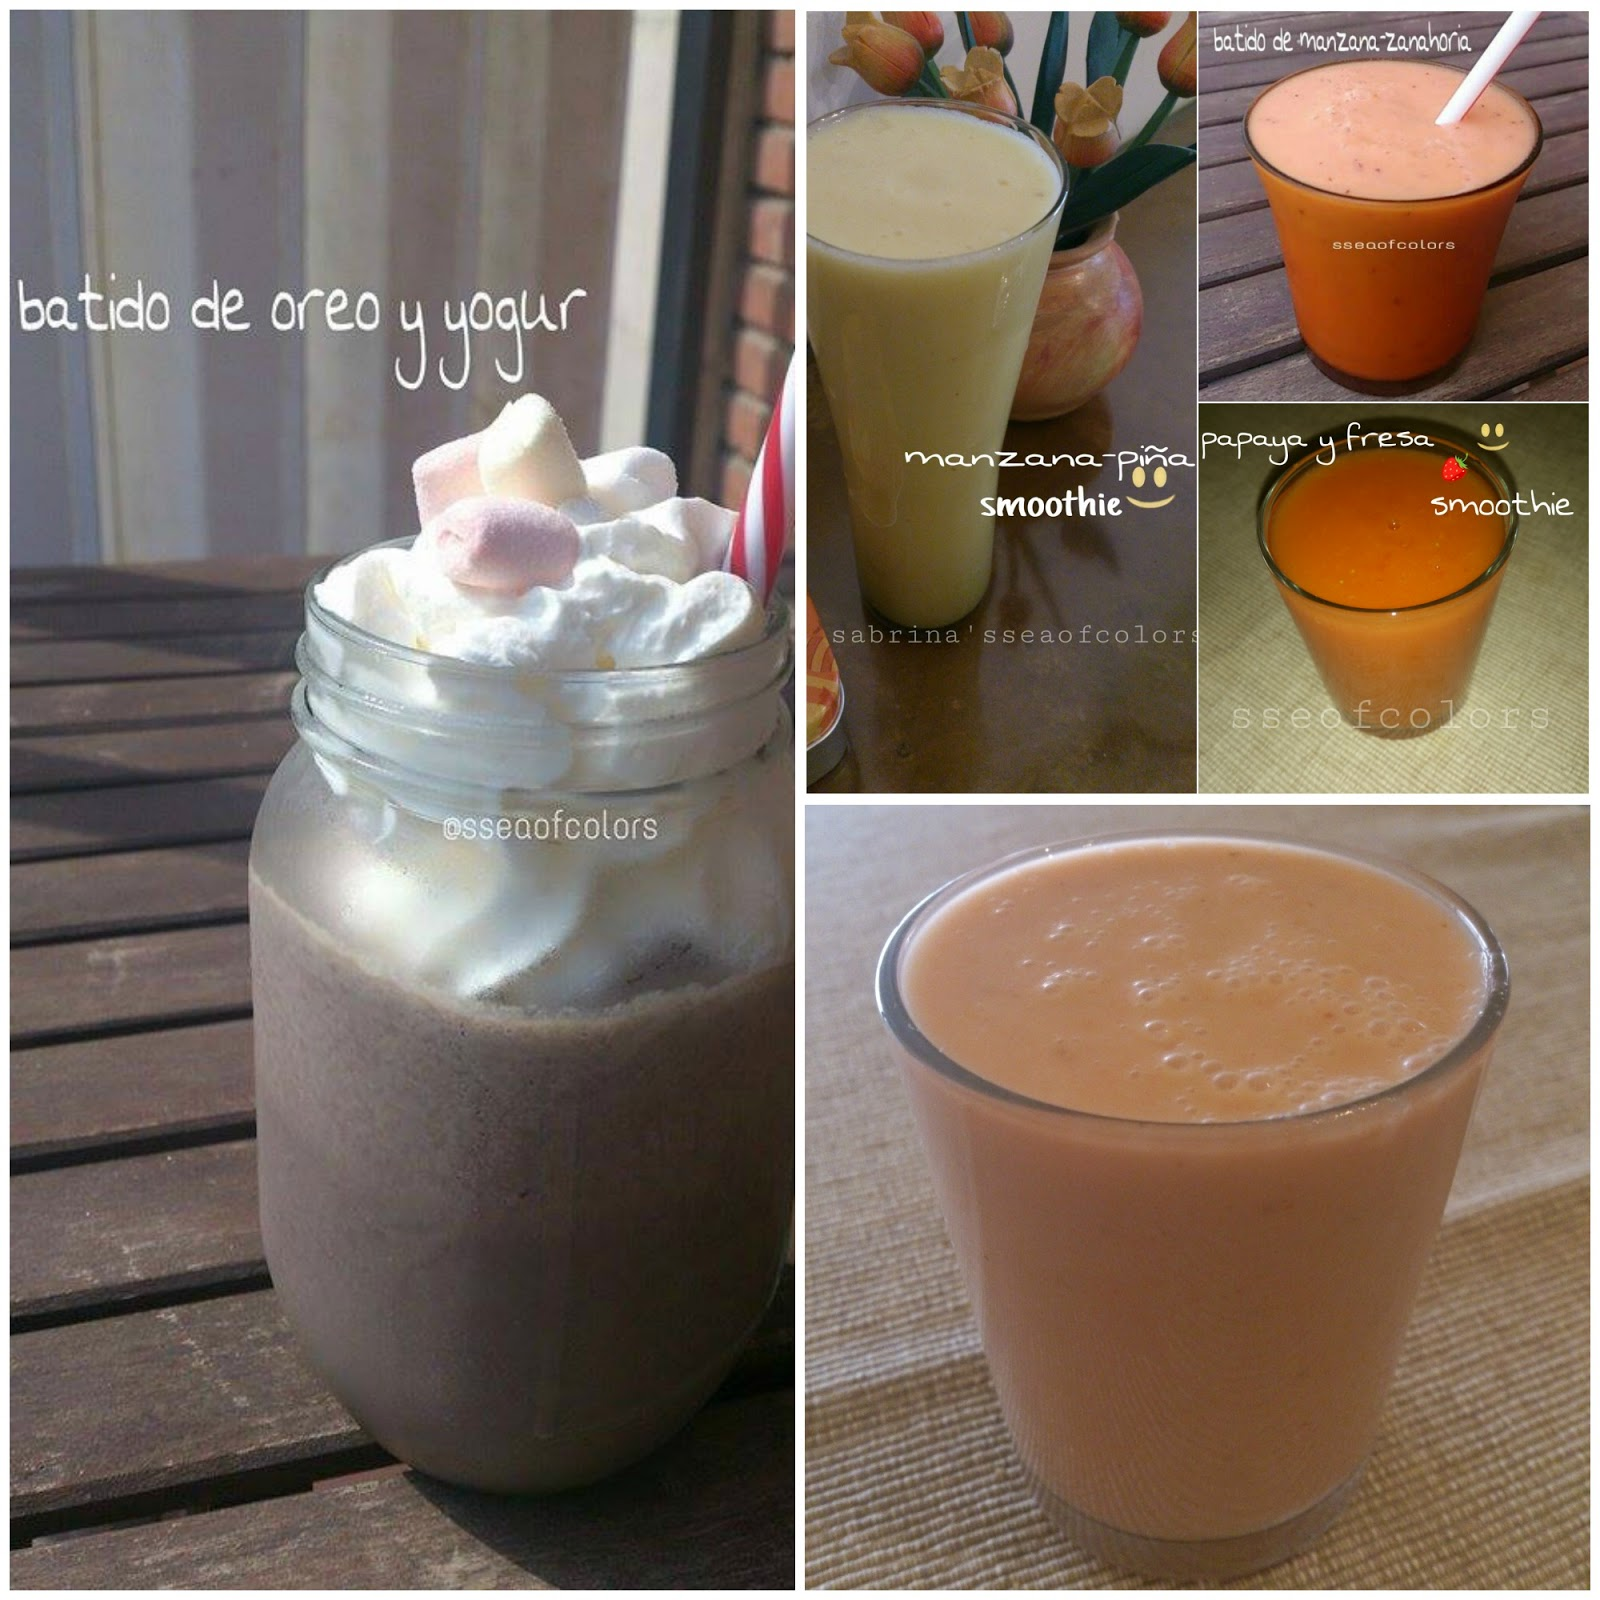 Batidos y Smoothies